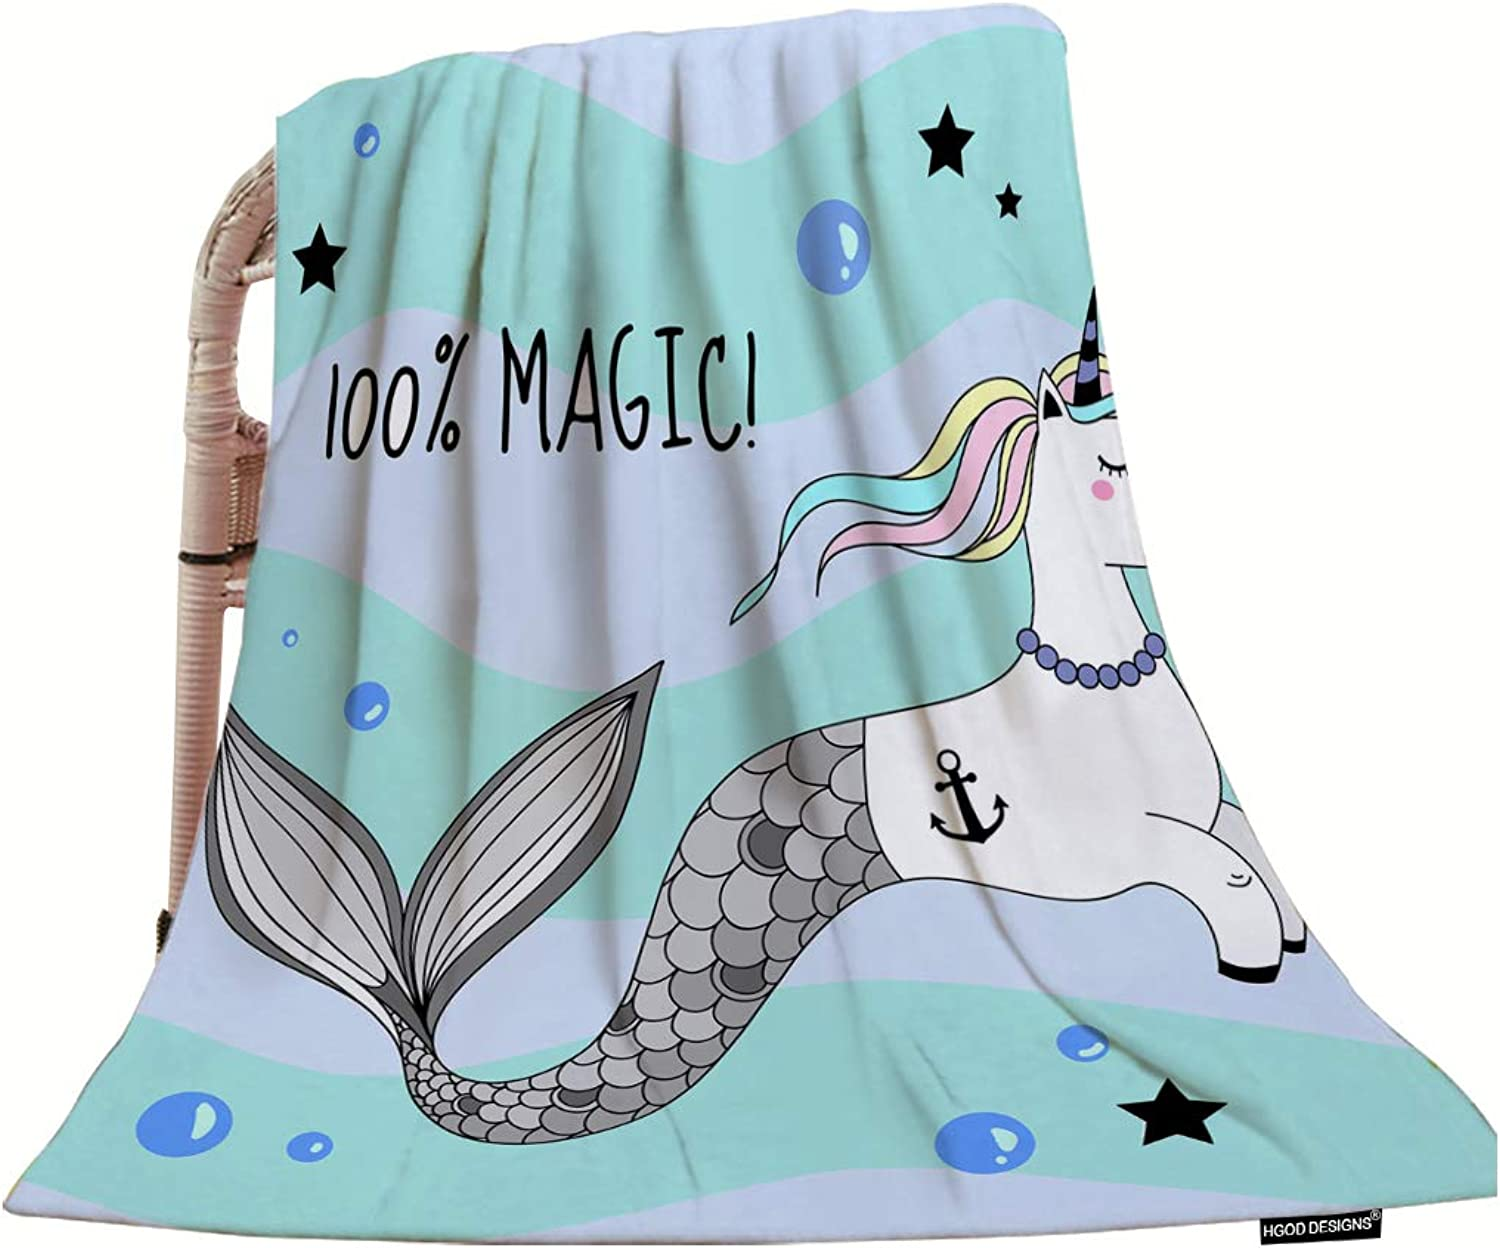 HGOD DESIGNS Unicorn Throw Blanket,A Cute Unicorn with A Mermaid Tail and A Rainbow Mane Soft Warm Decorative Throw Blanket for Bed Chair Couch Sofa 50 X60